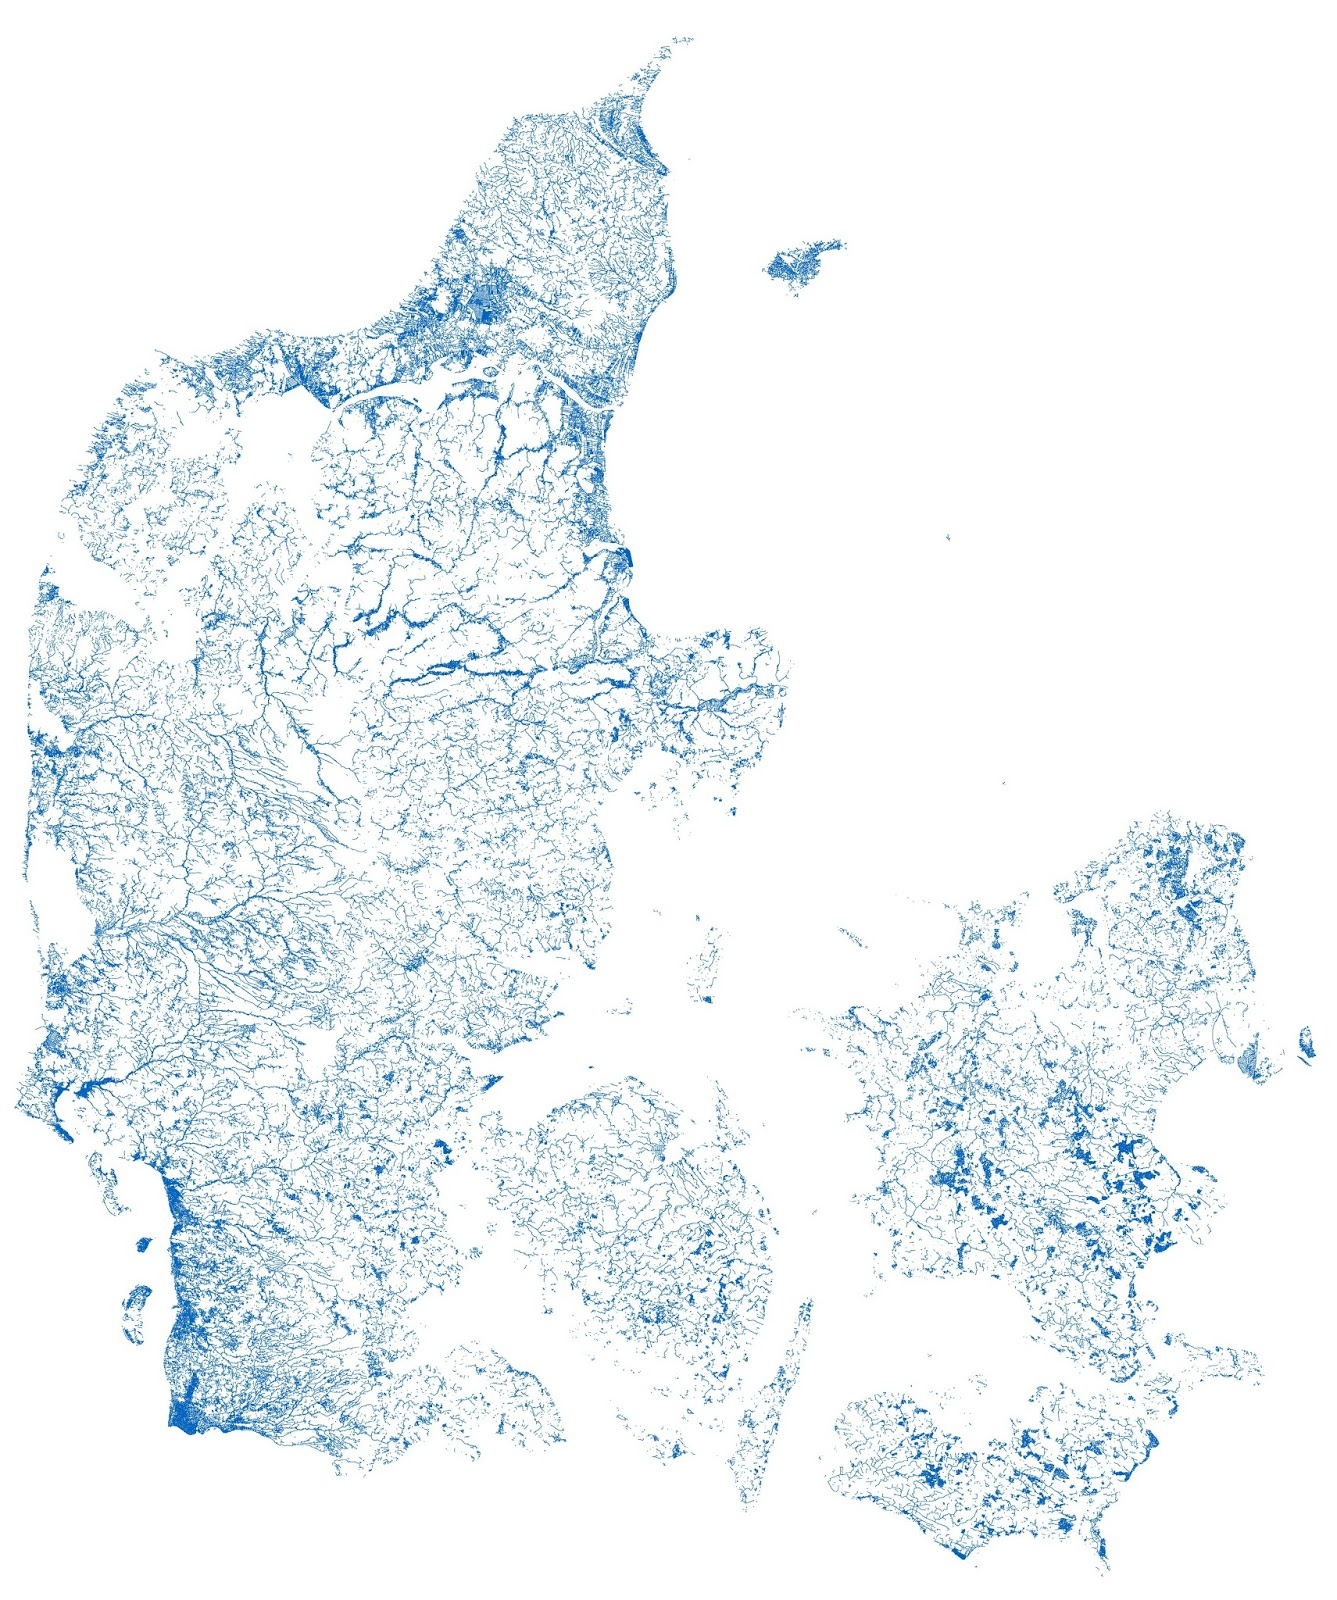 Denmark plotted by every mapped stream & river